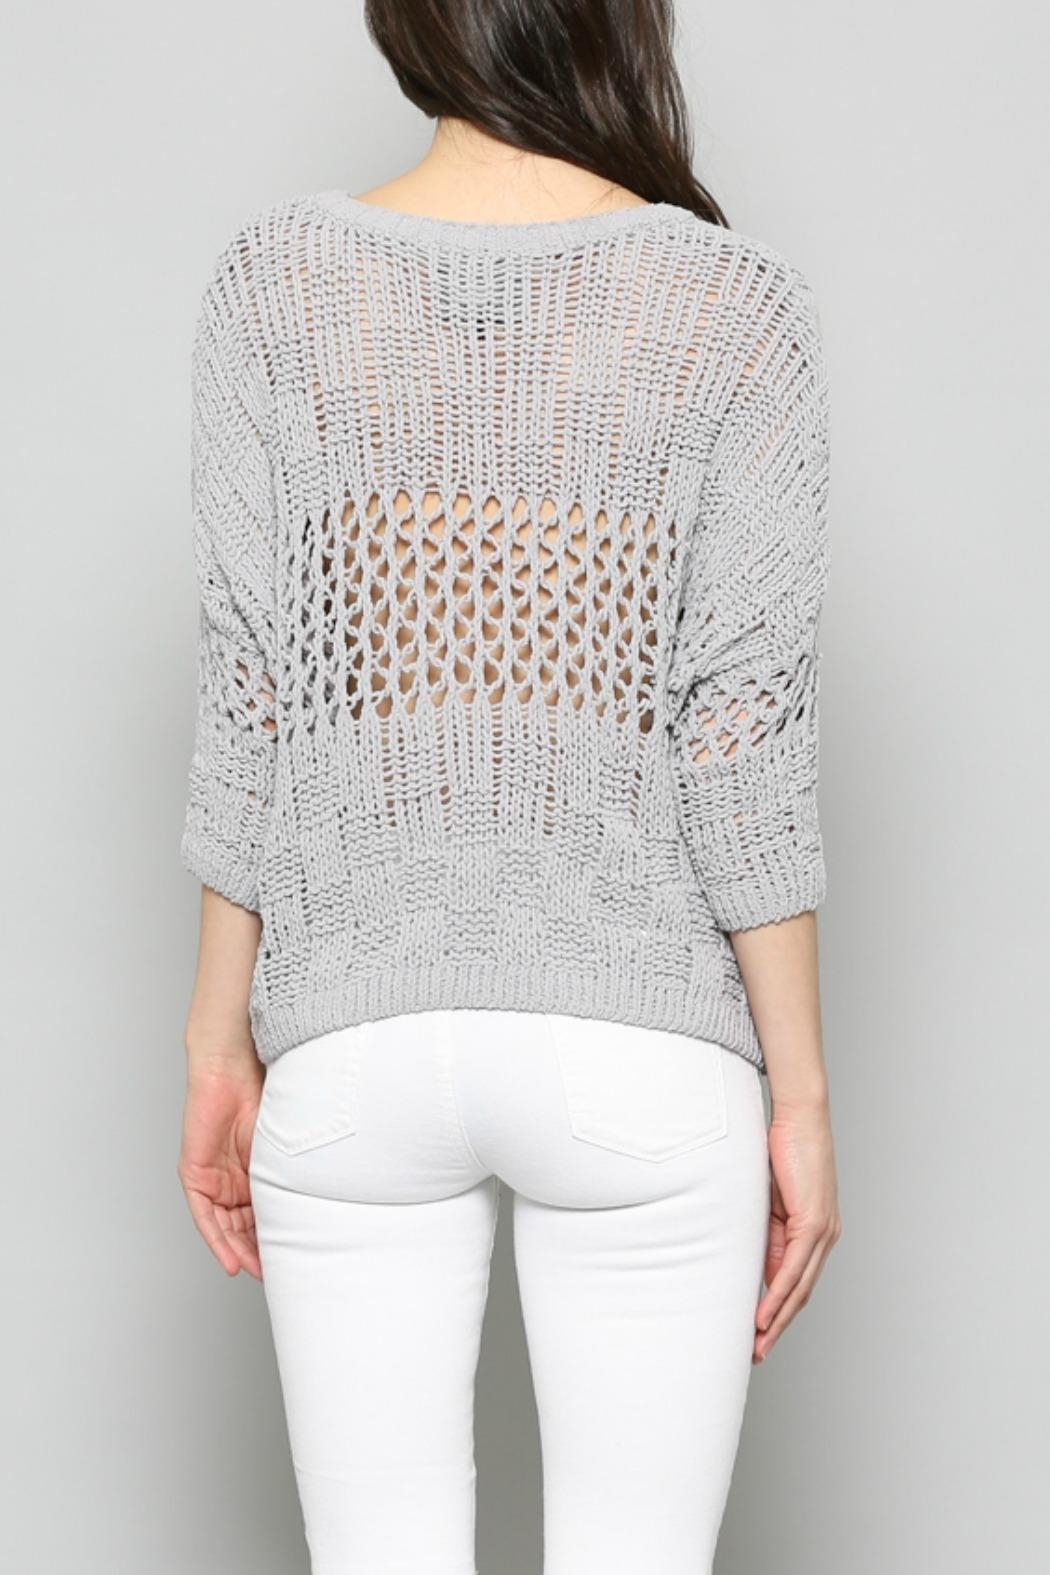 FATE by LFD Chenille Cropped Sweater - Side Cropped Image